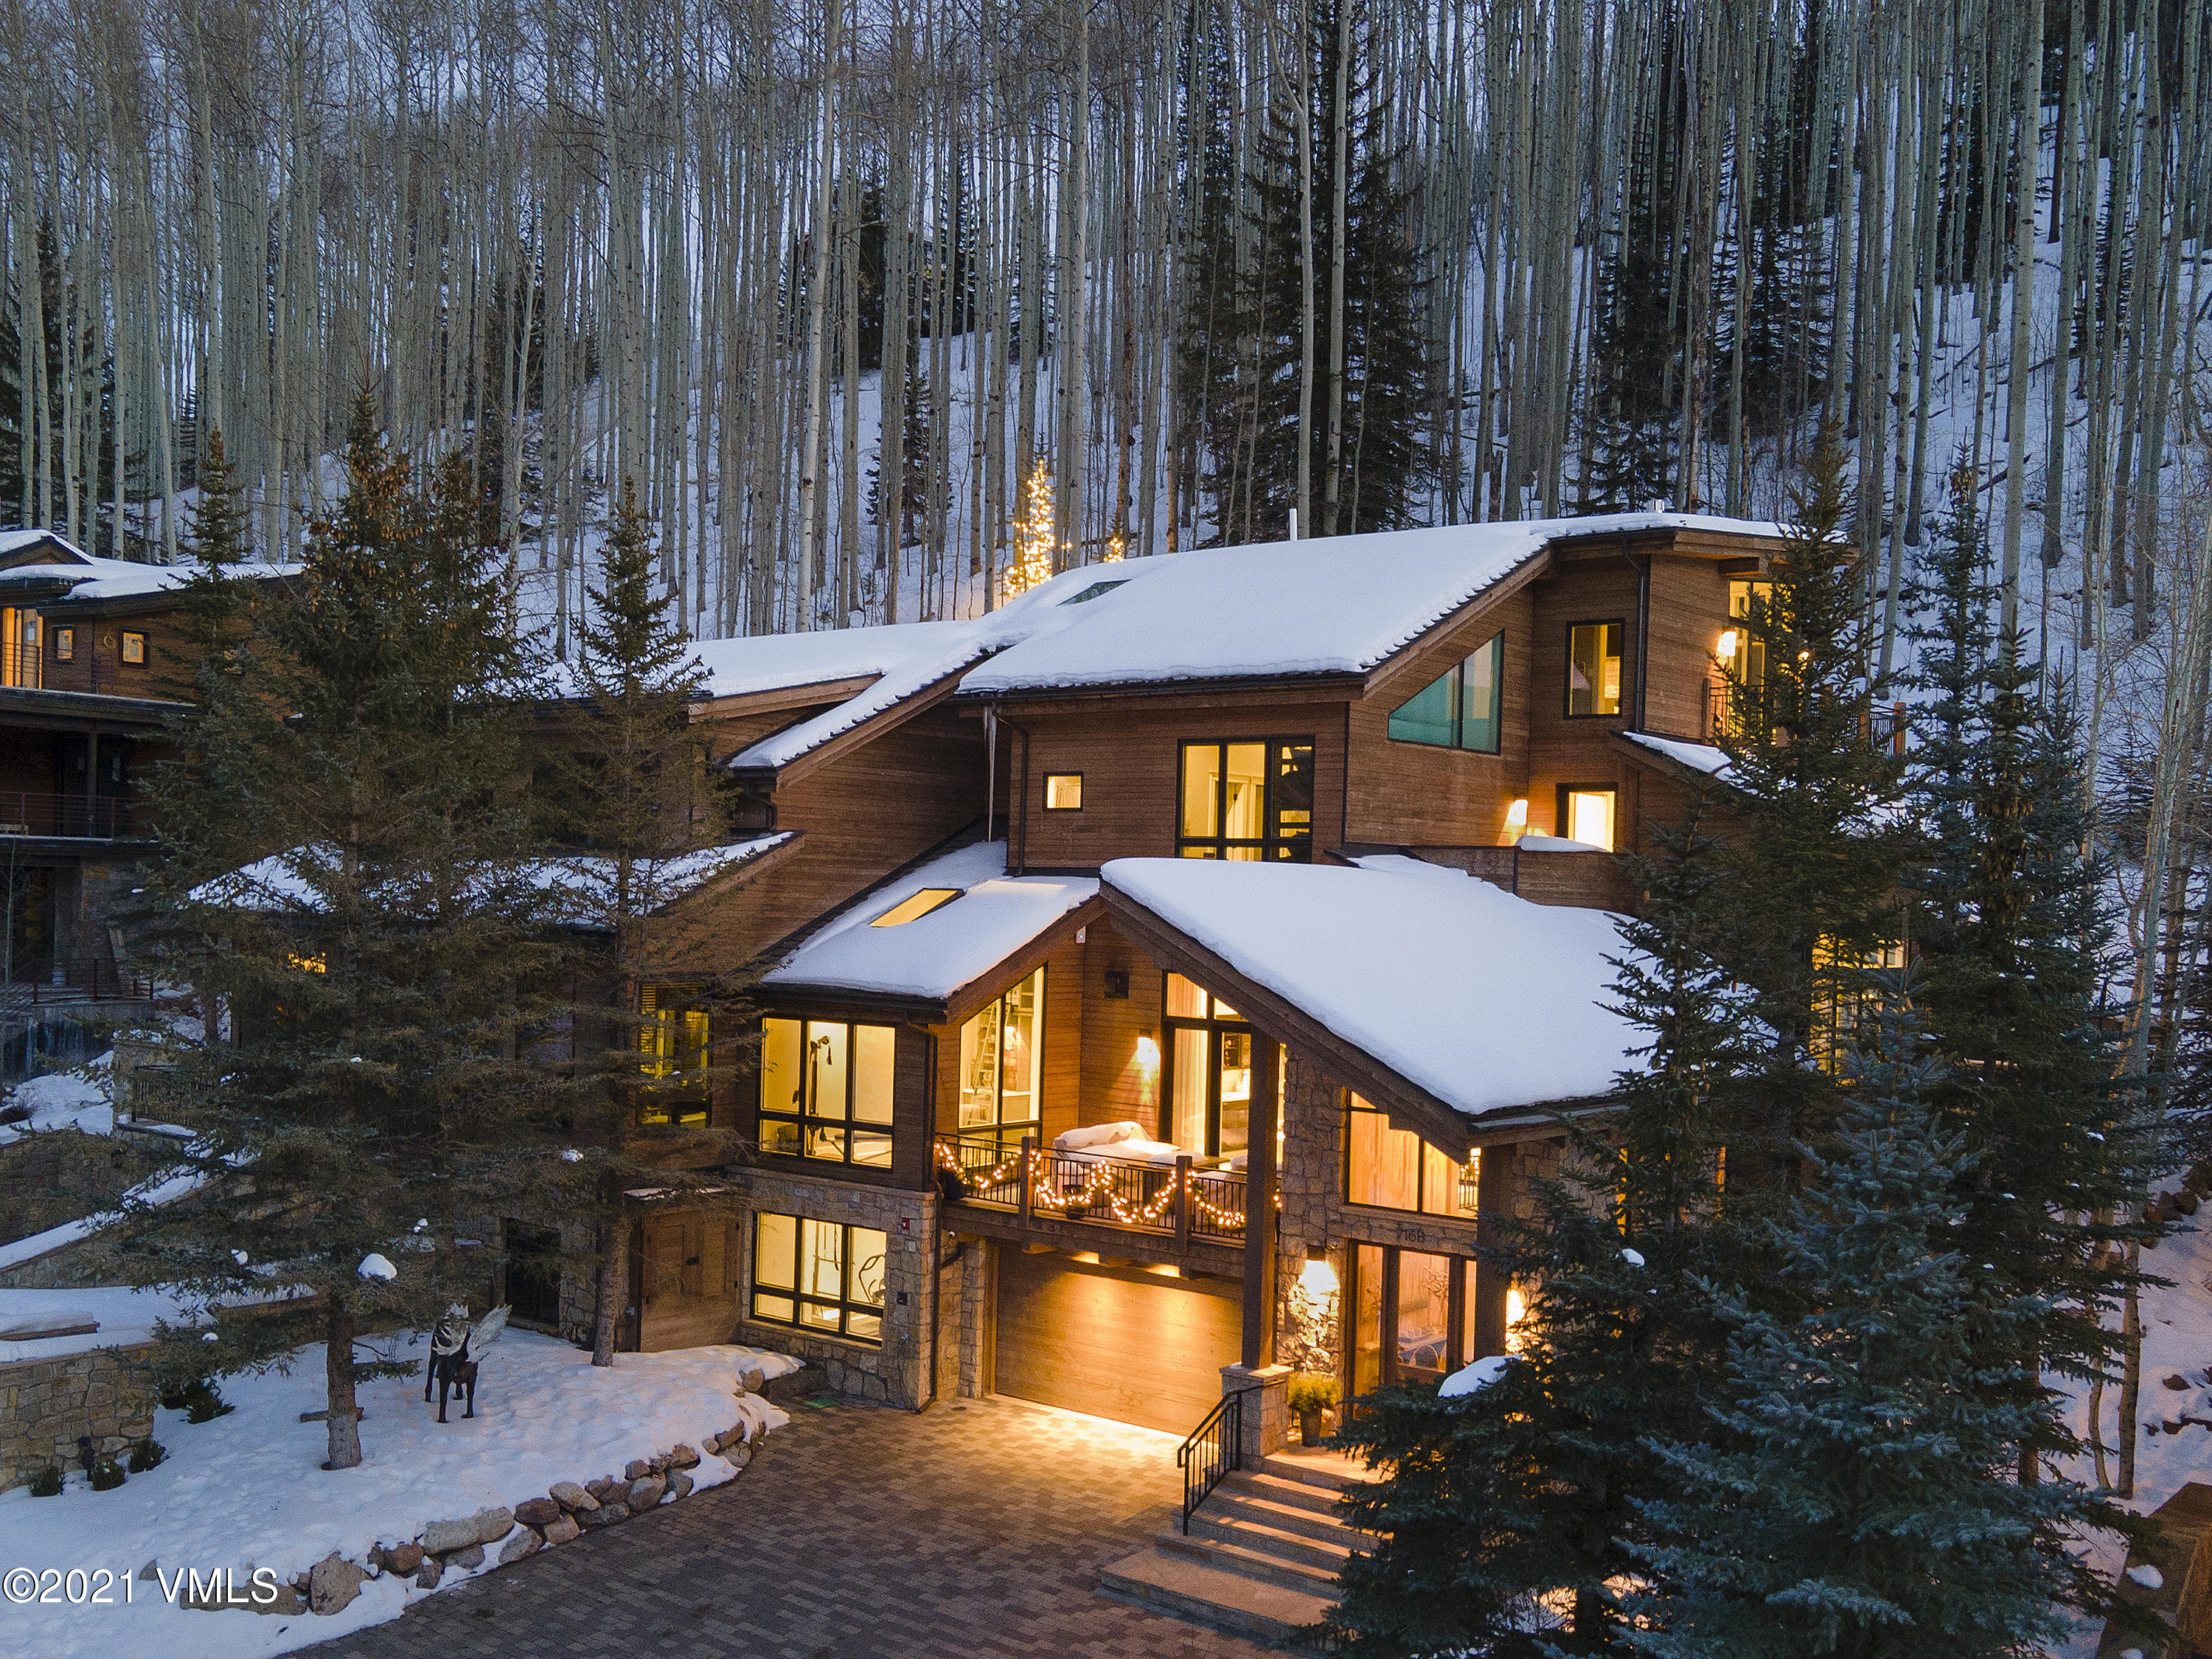 716 Forest Rd Road, B, Vail, Co 81657 Property Photo